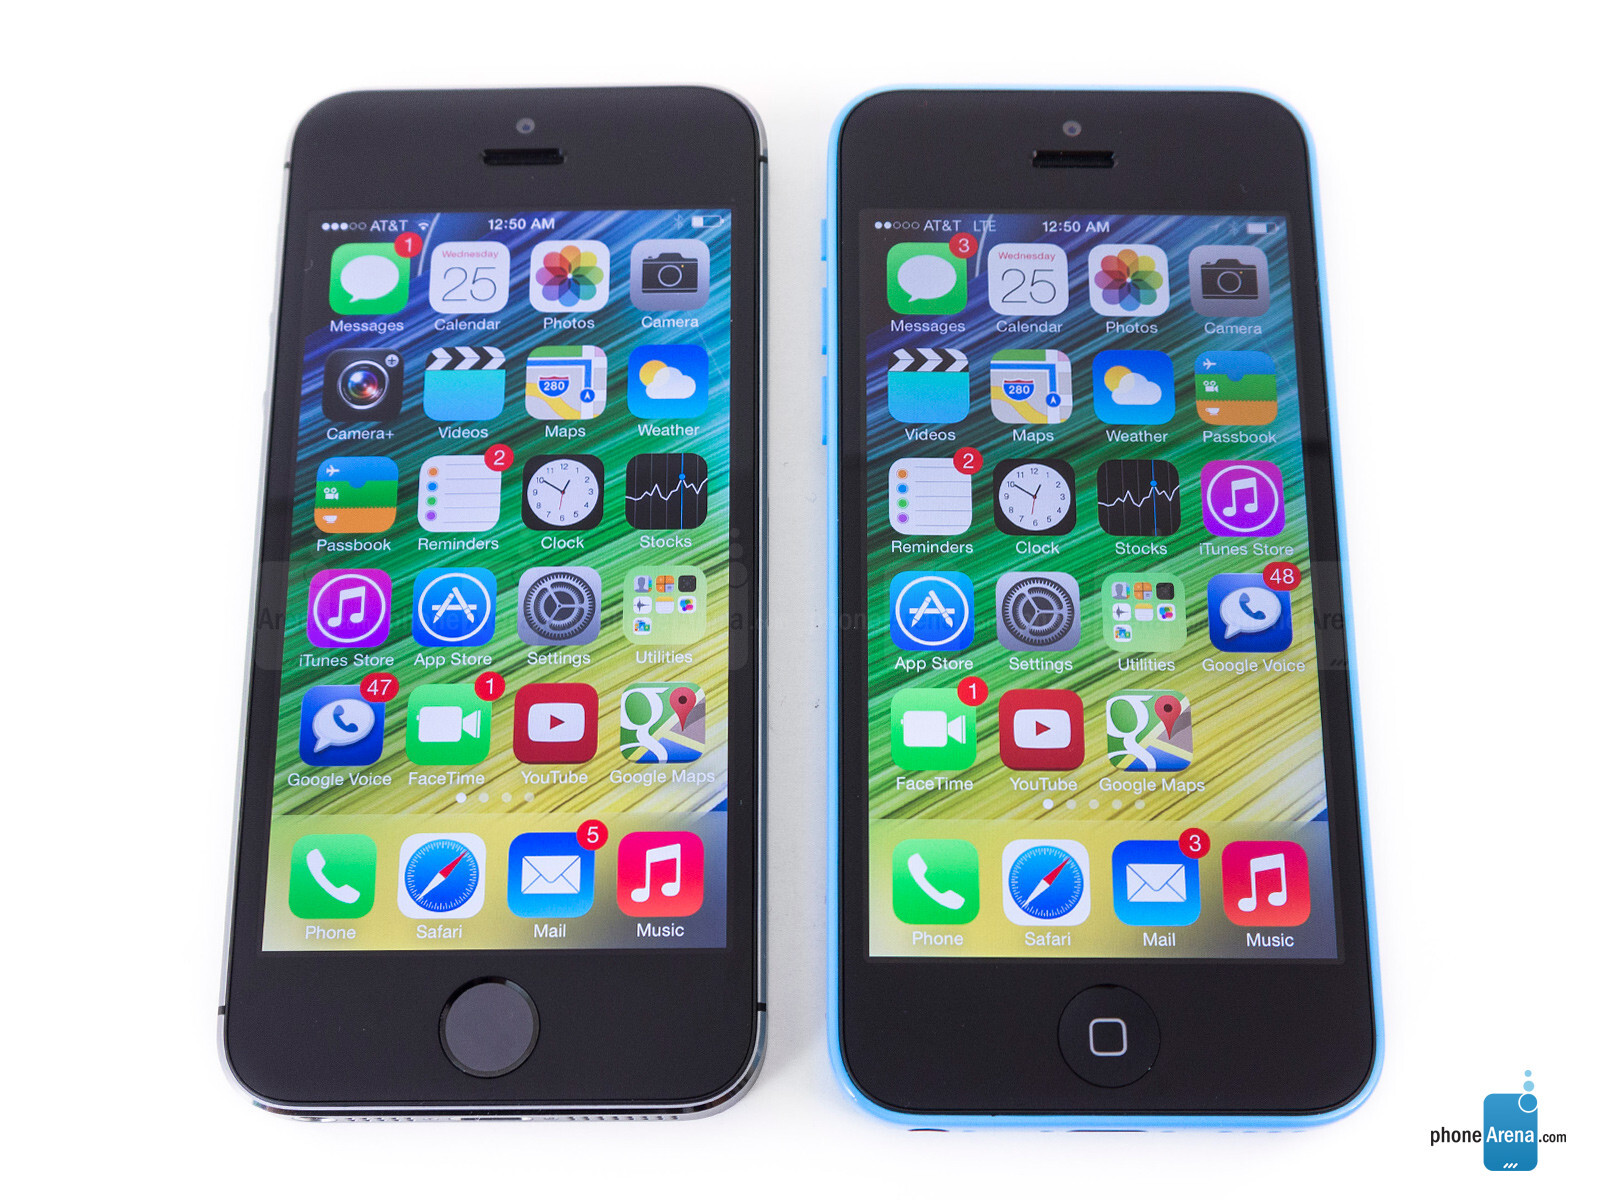 iphone 5c vs iphone 5s apple iphone 5s vs apple iphone 5c 17442